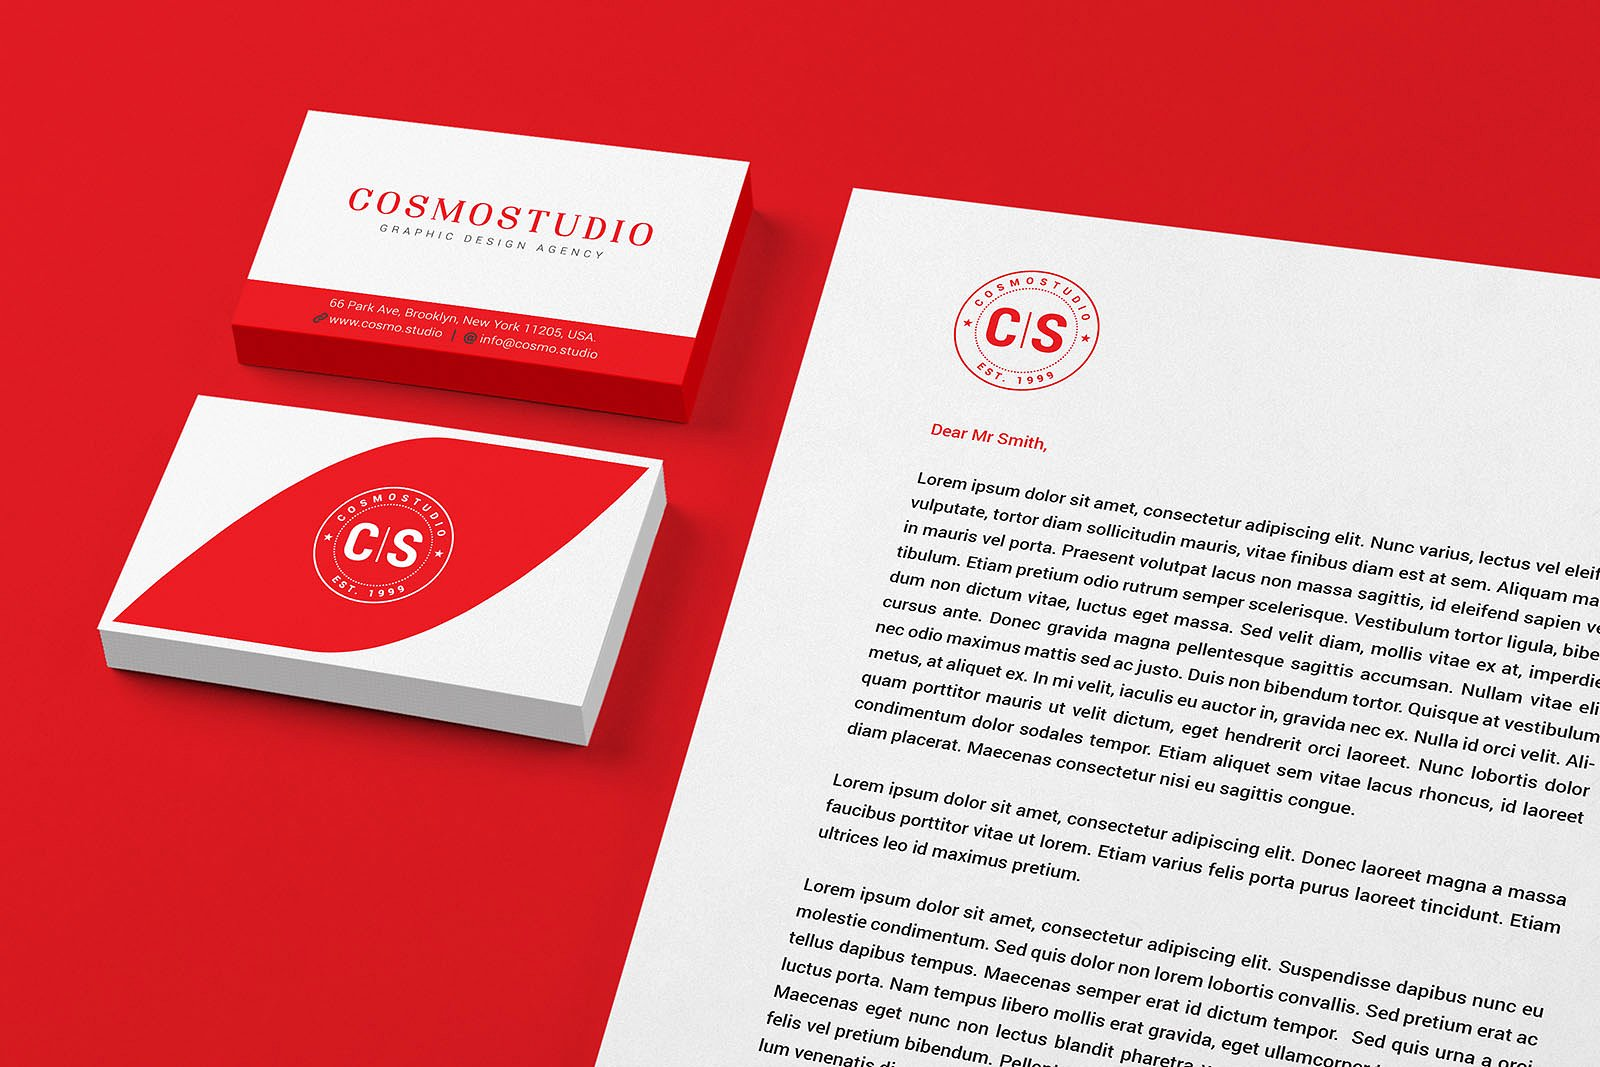 Business card mockup templates datariouruguay psd business card mock up vol9 psd mock up templates reheart Image collections